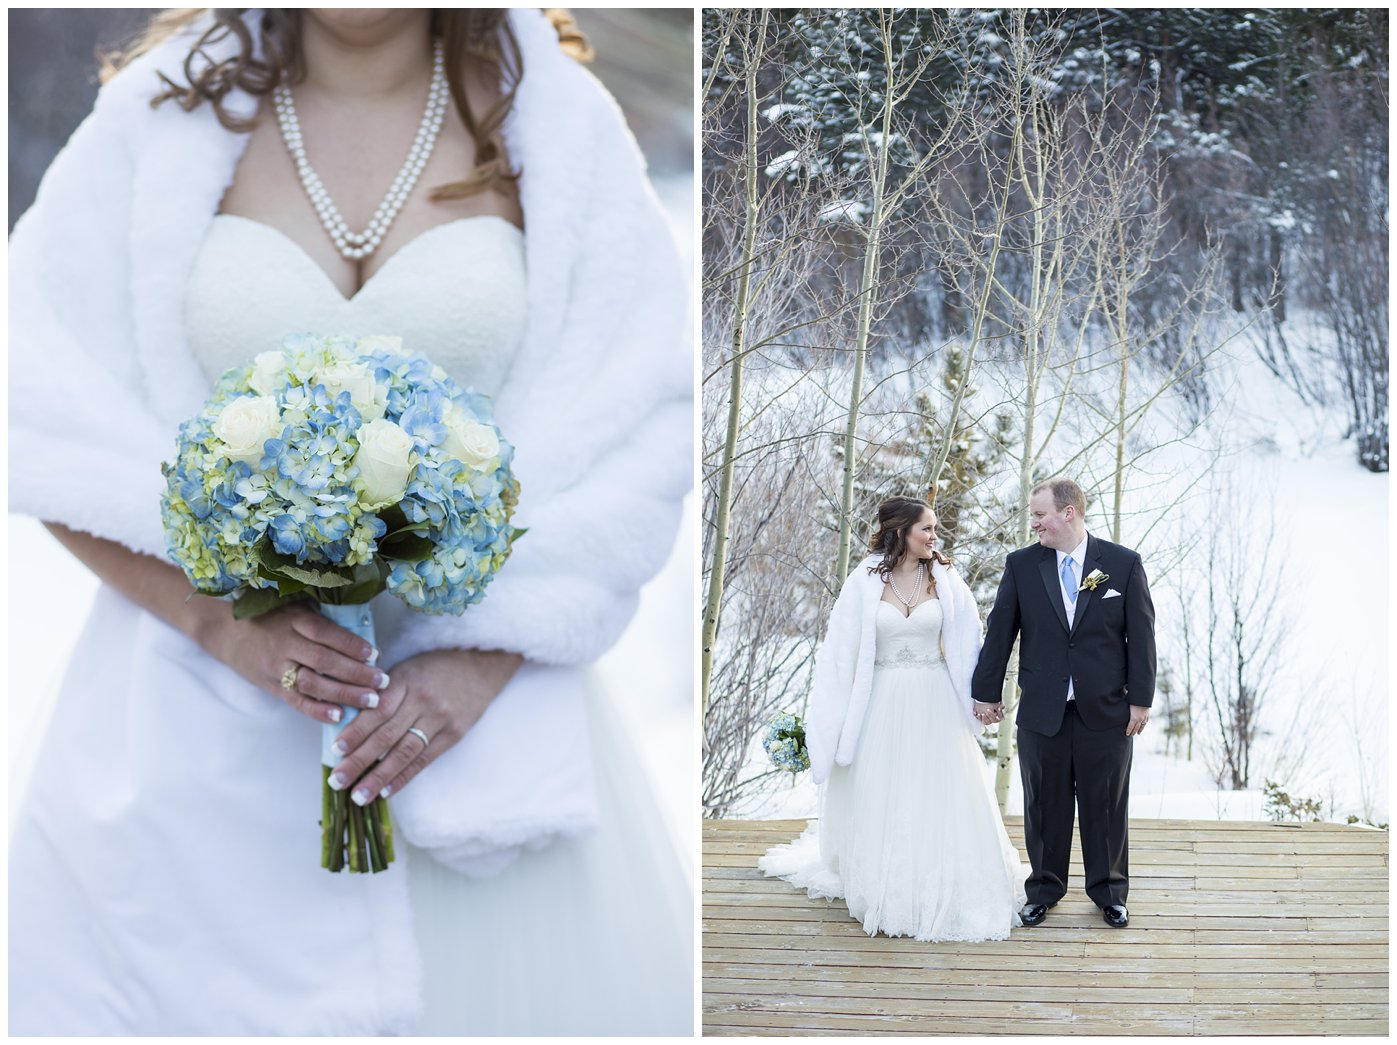 20150101WeddingWalker-Tyler443_web.jpg